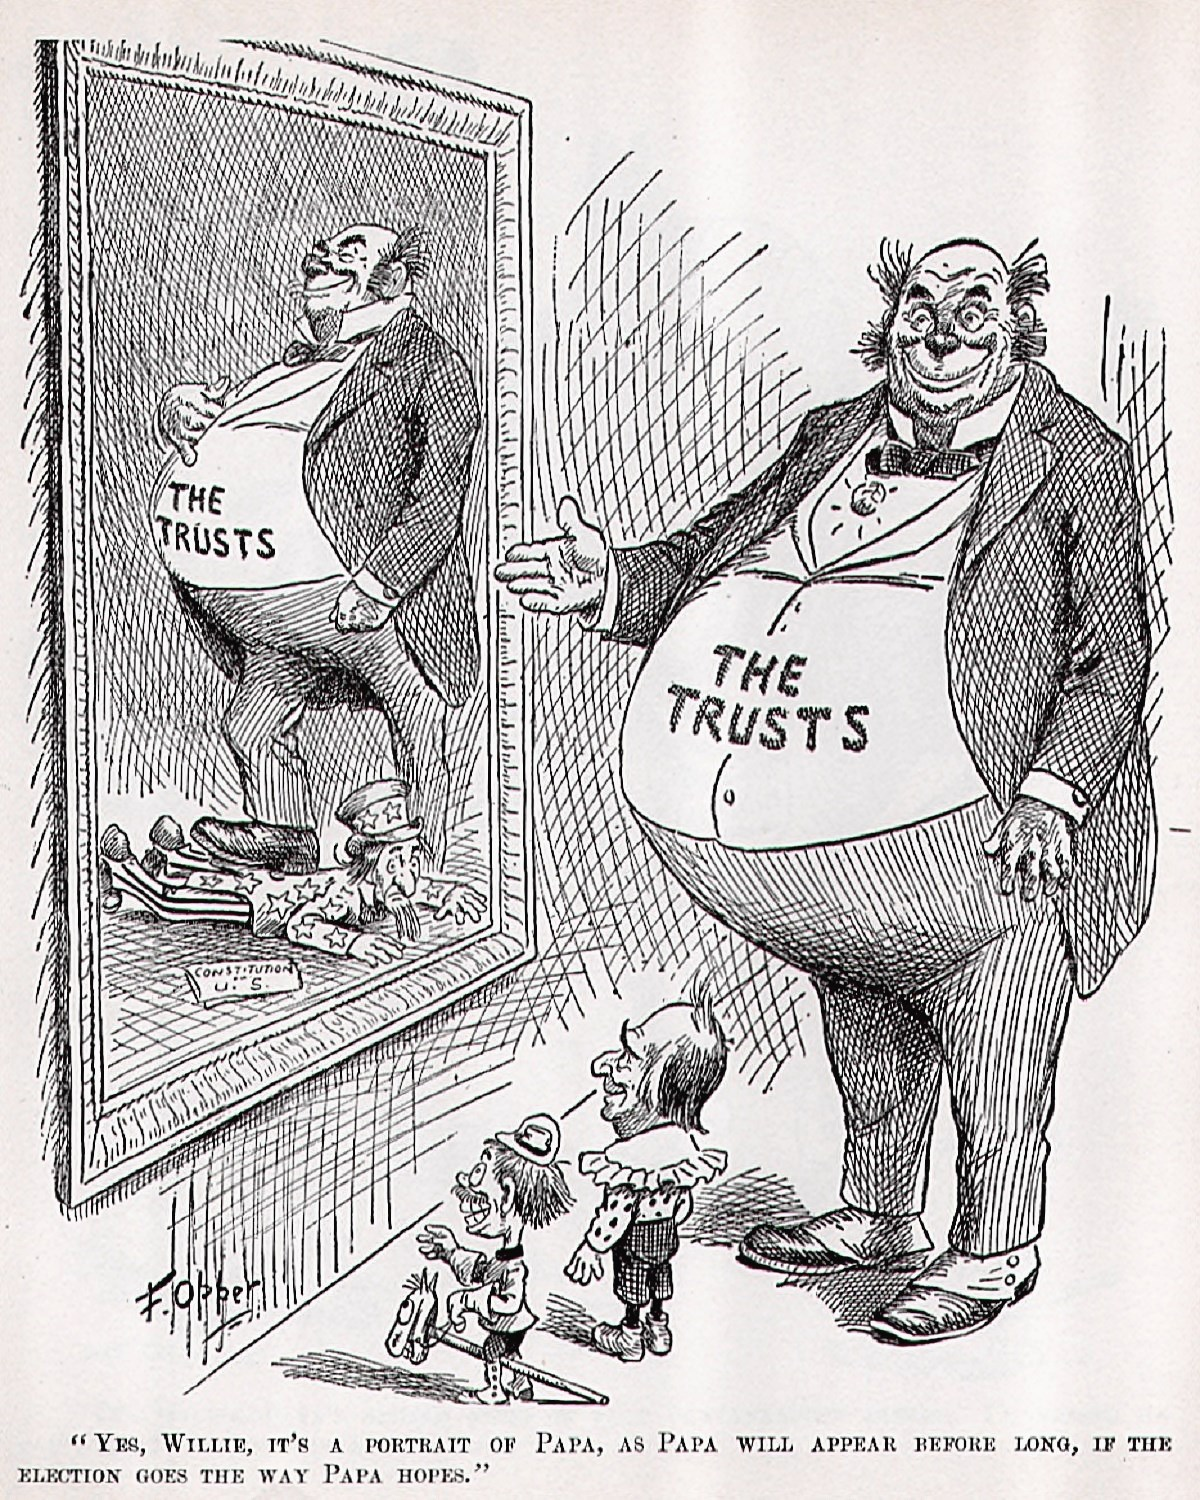 00 Willie and His Papa. US Political Cartoon. 1900. 06.09.13